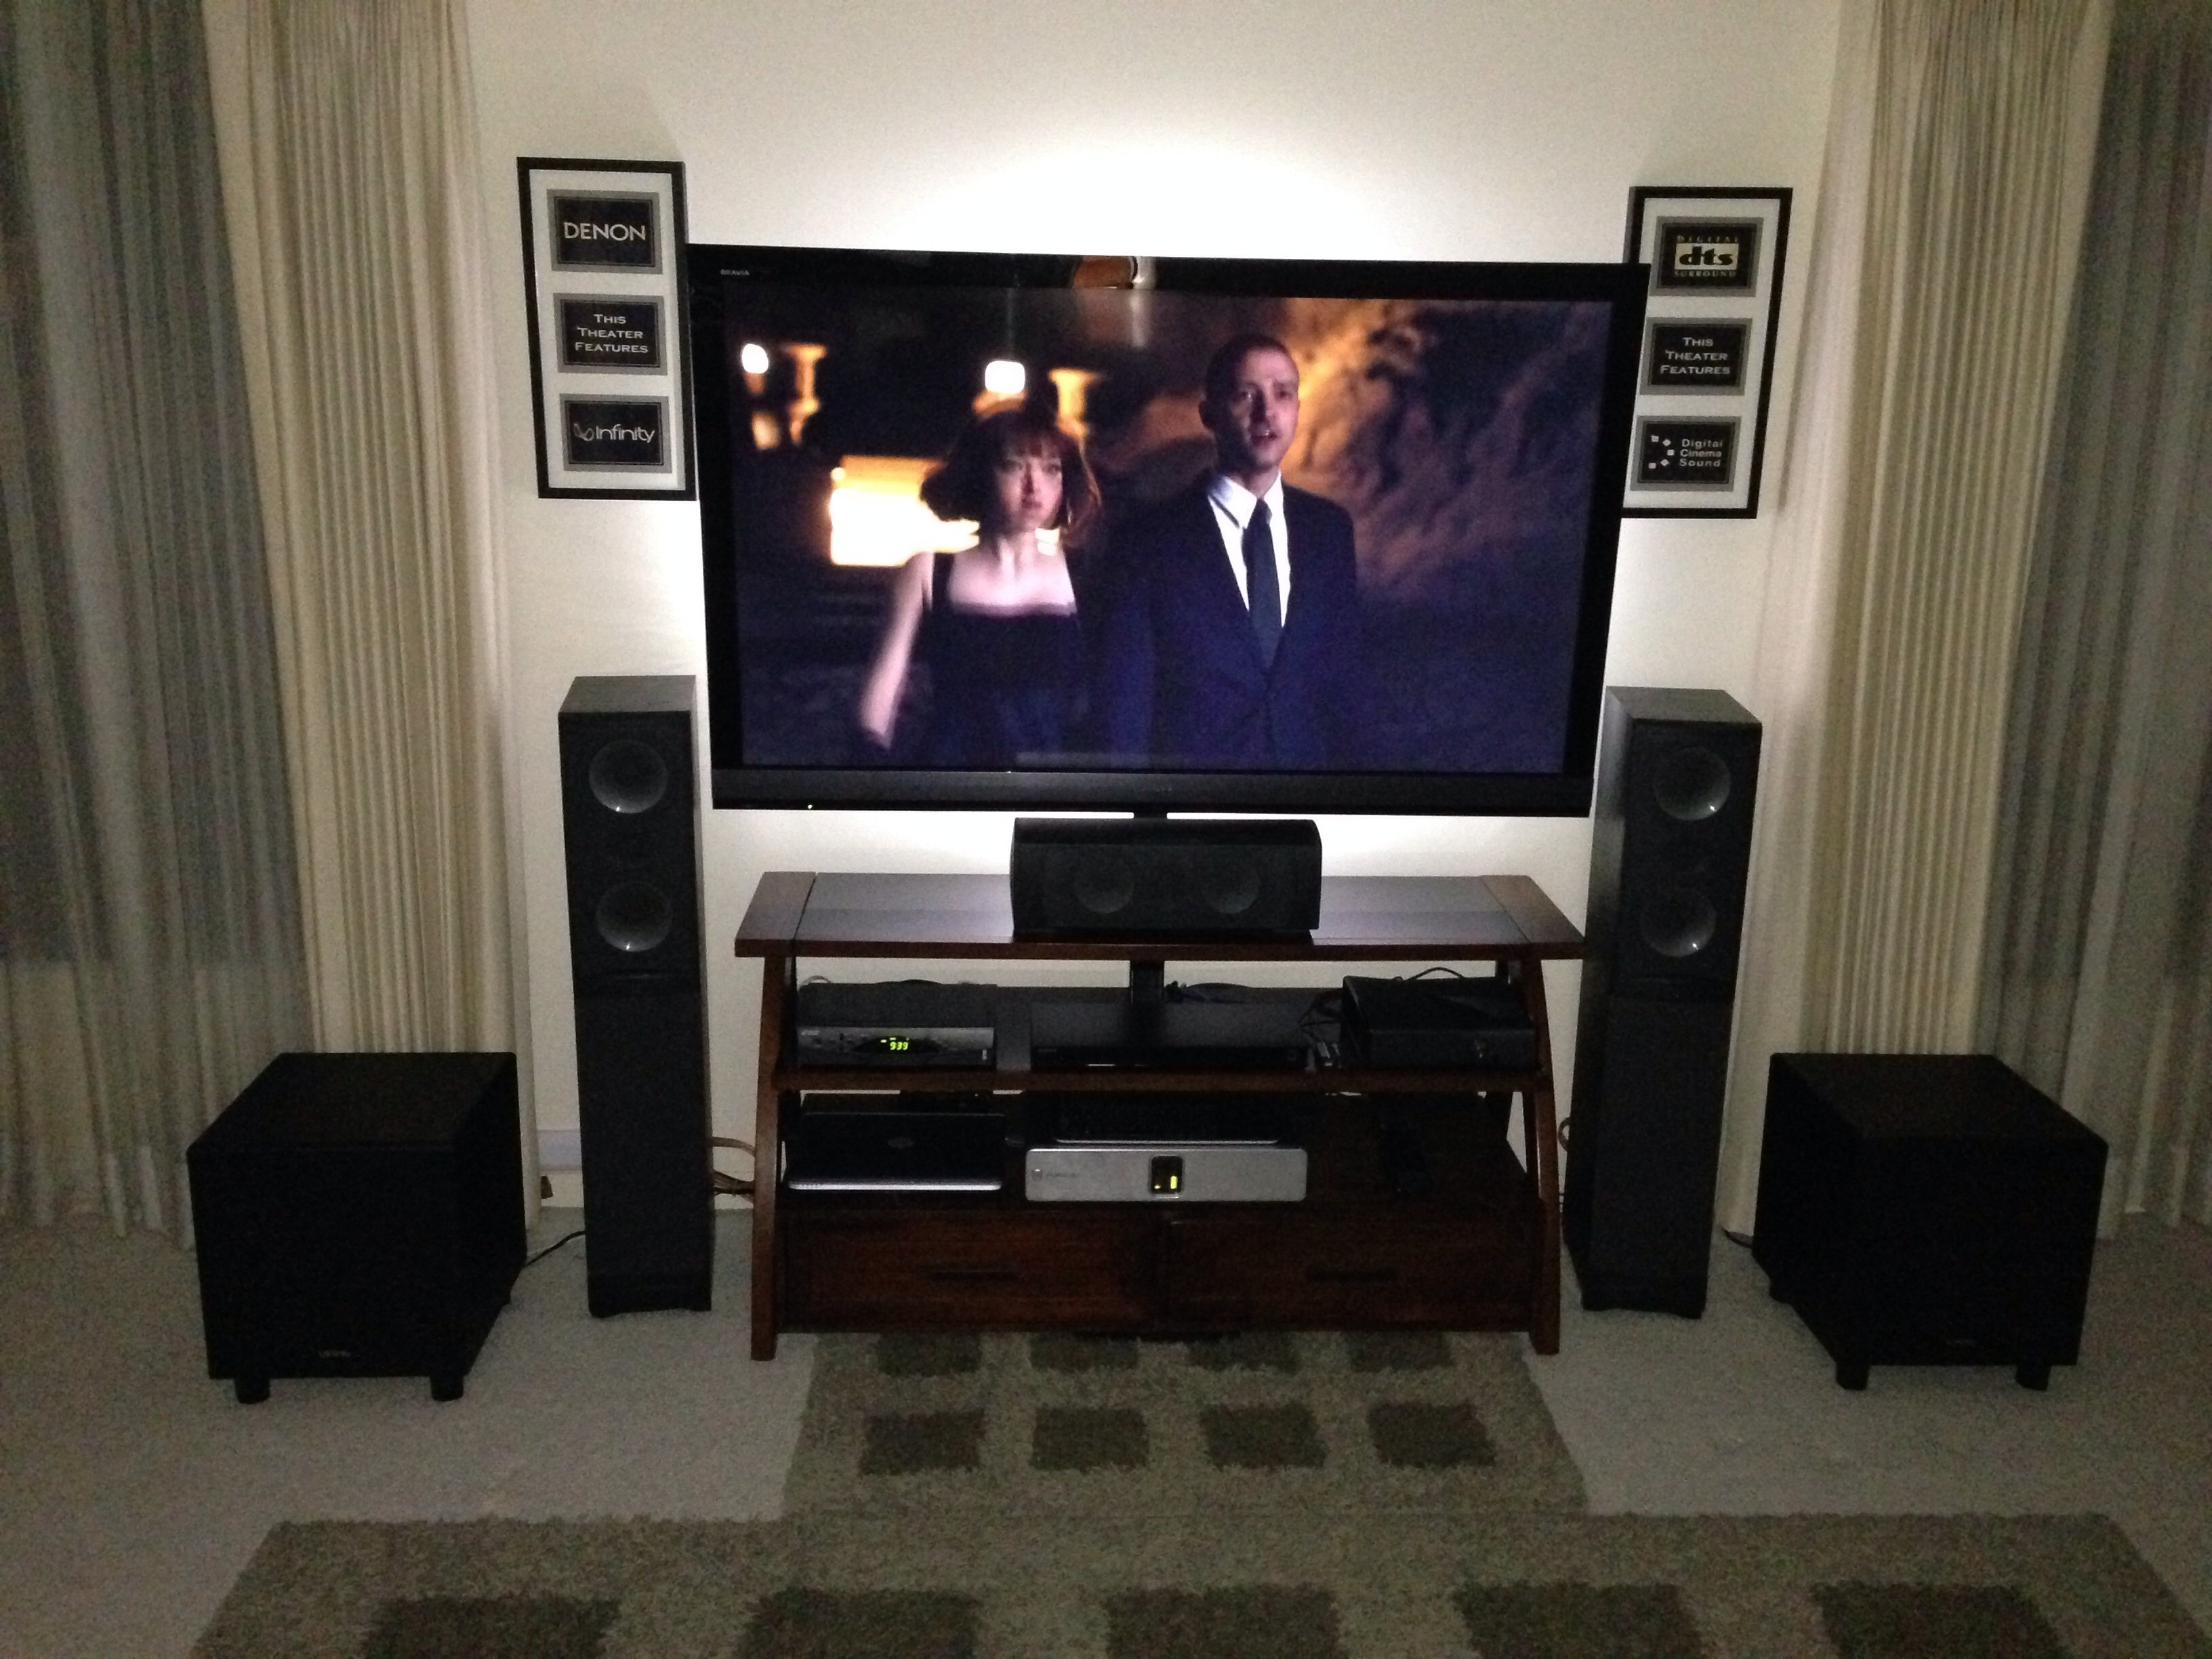 Buying A New 60 Led Tv Means I Need A New Stand Suggestions Avs